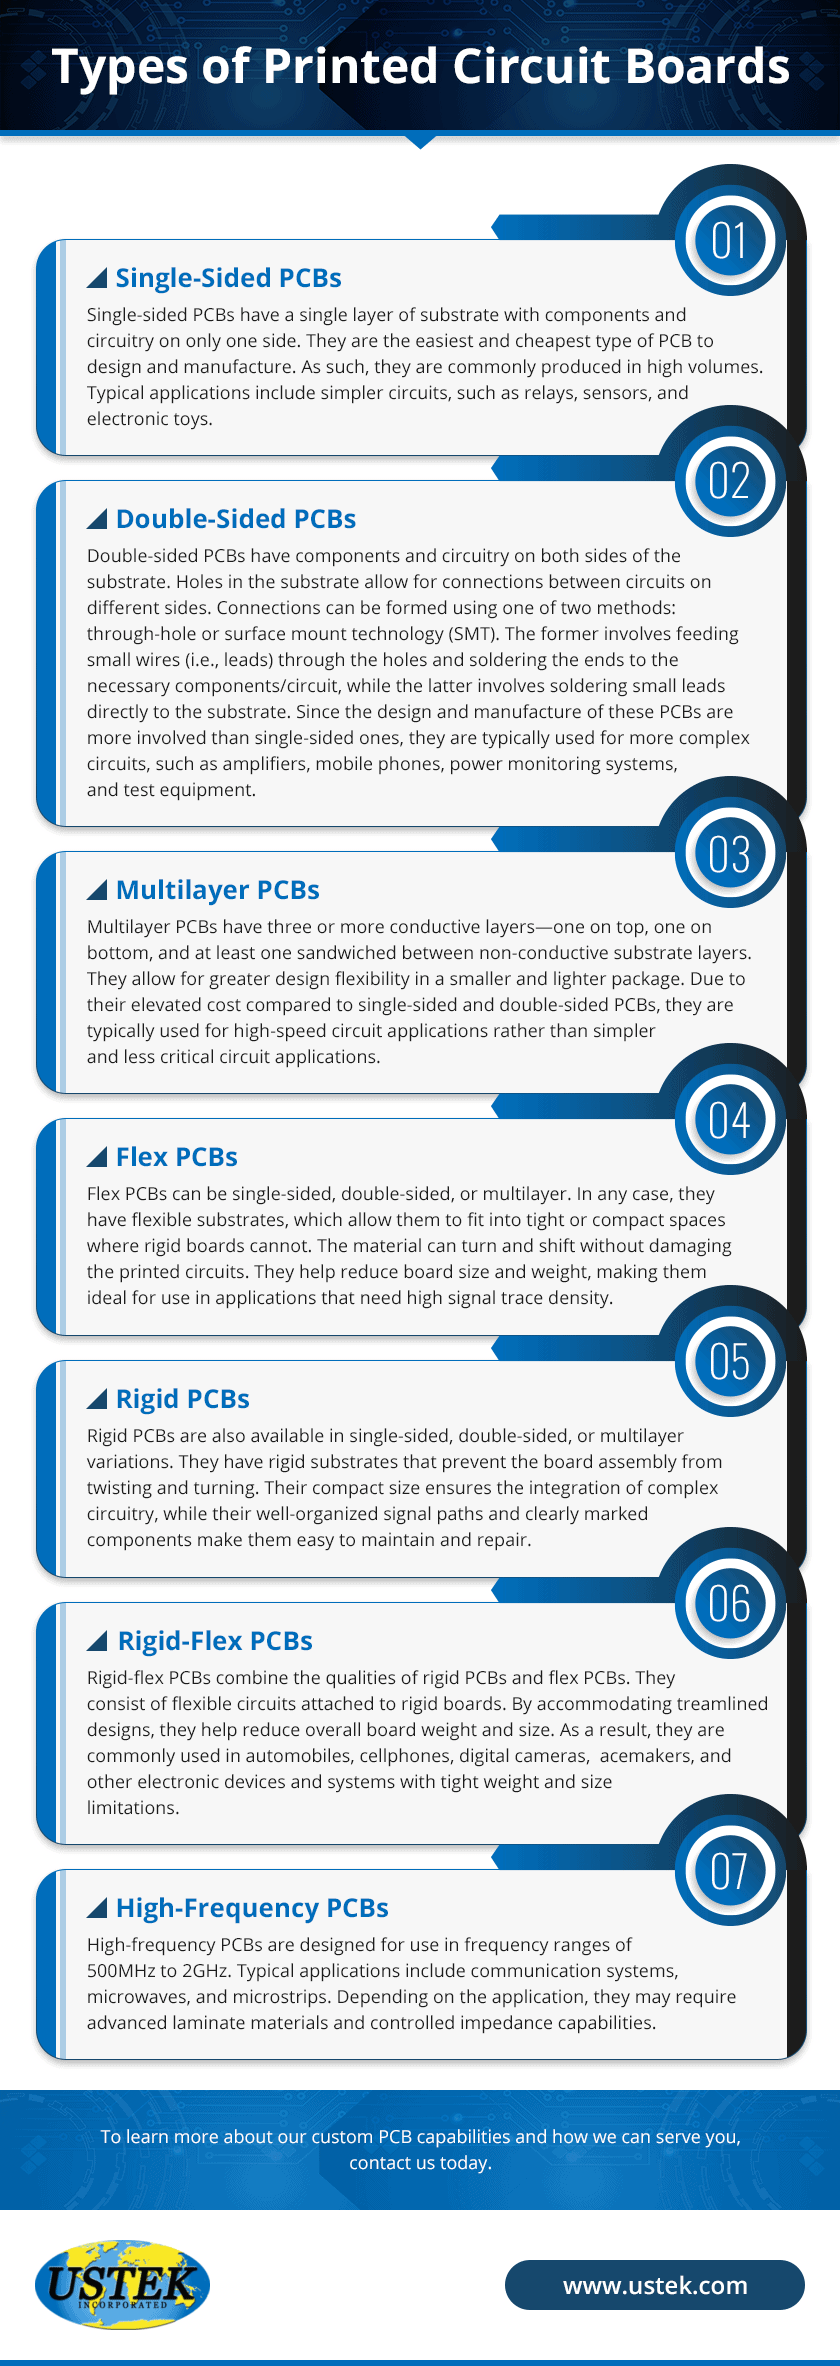 An infographic explaining the various types of PCBs